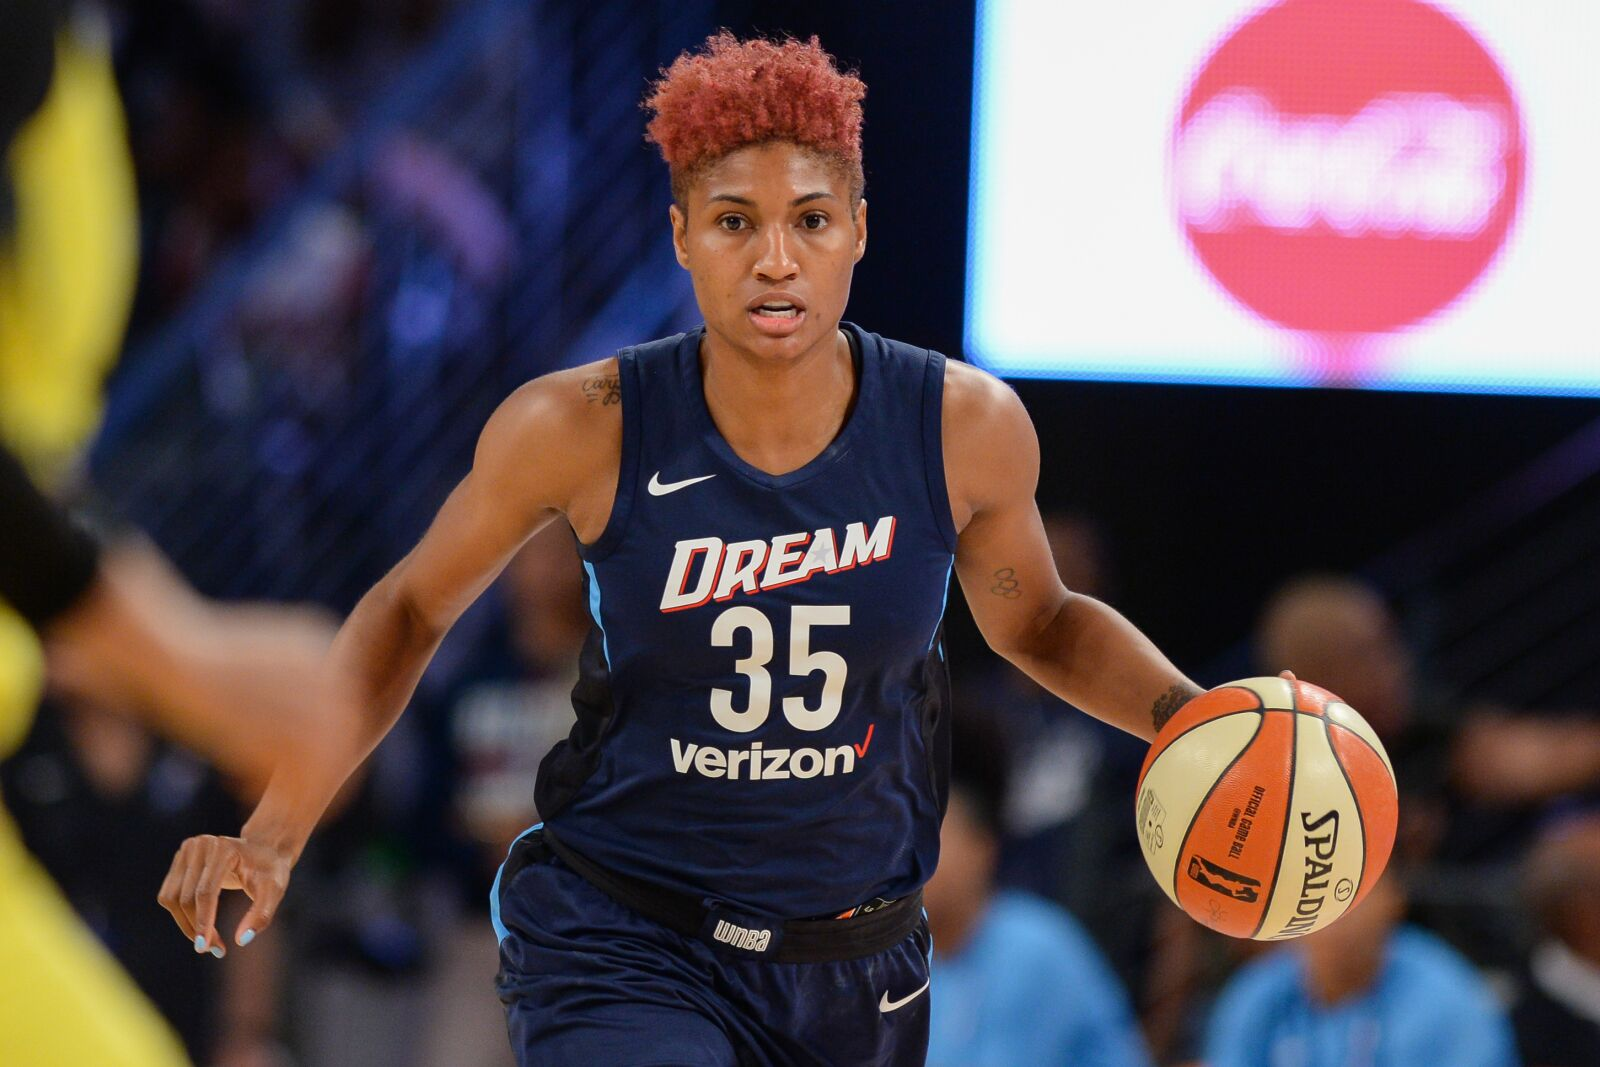 WNBA news: Dream's Angel McCoughtry taking her recovery 'day